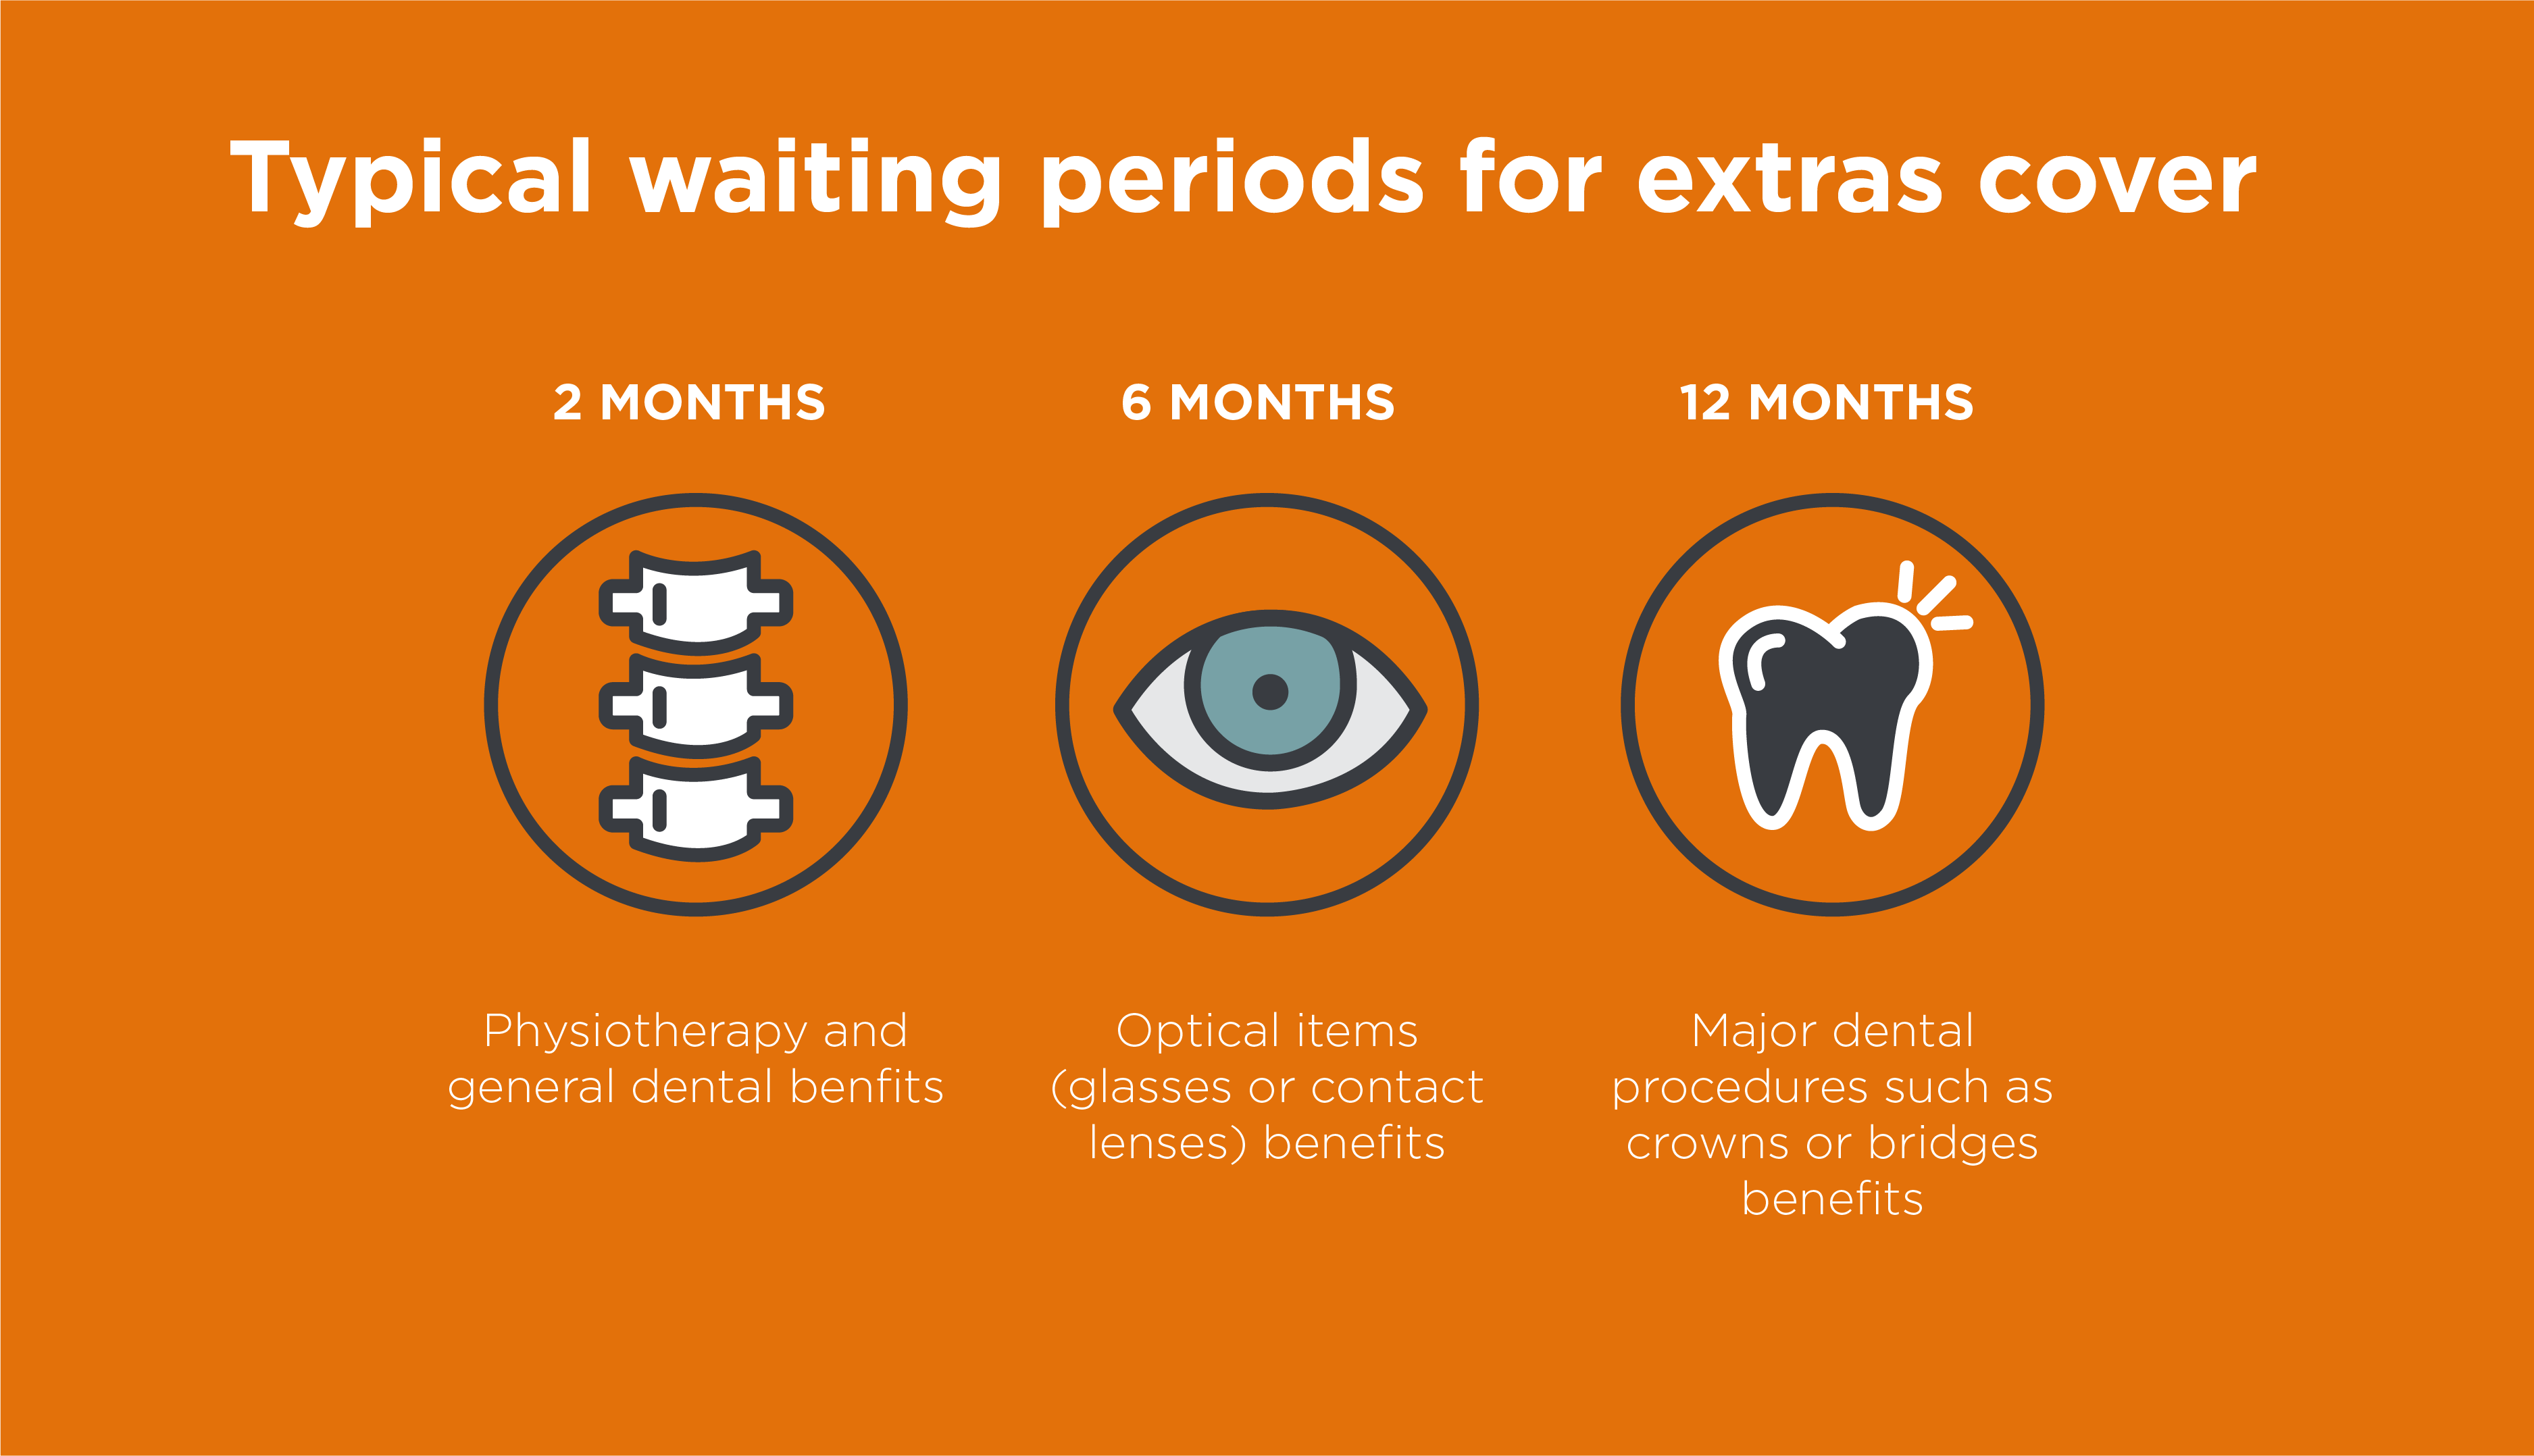 Typical waiting periods for extras cover